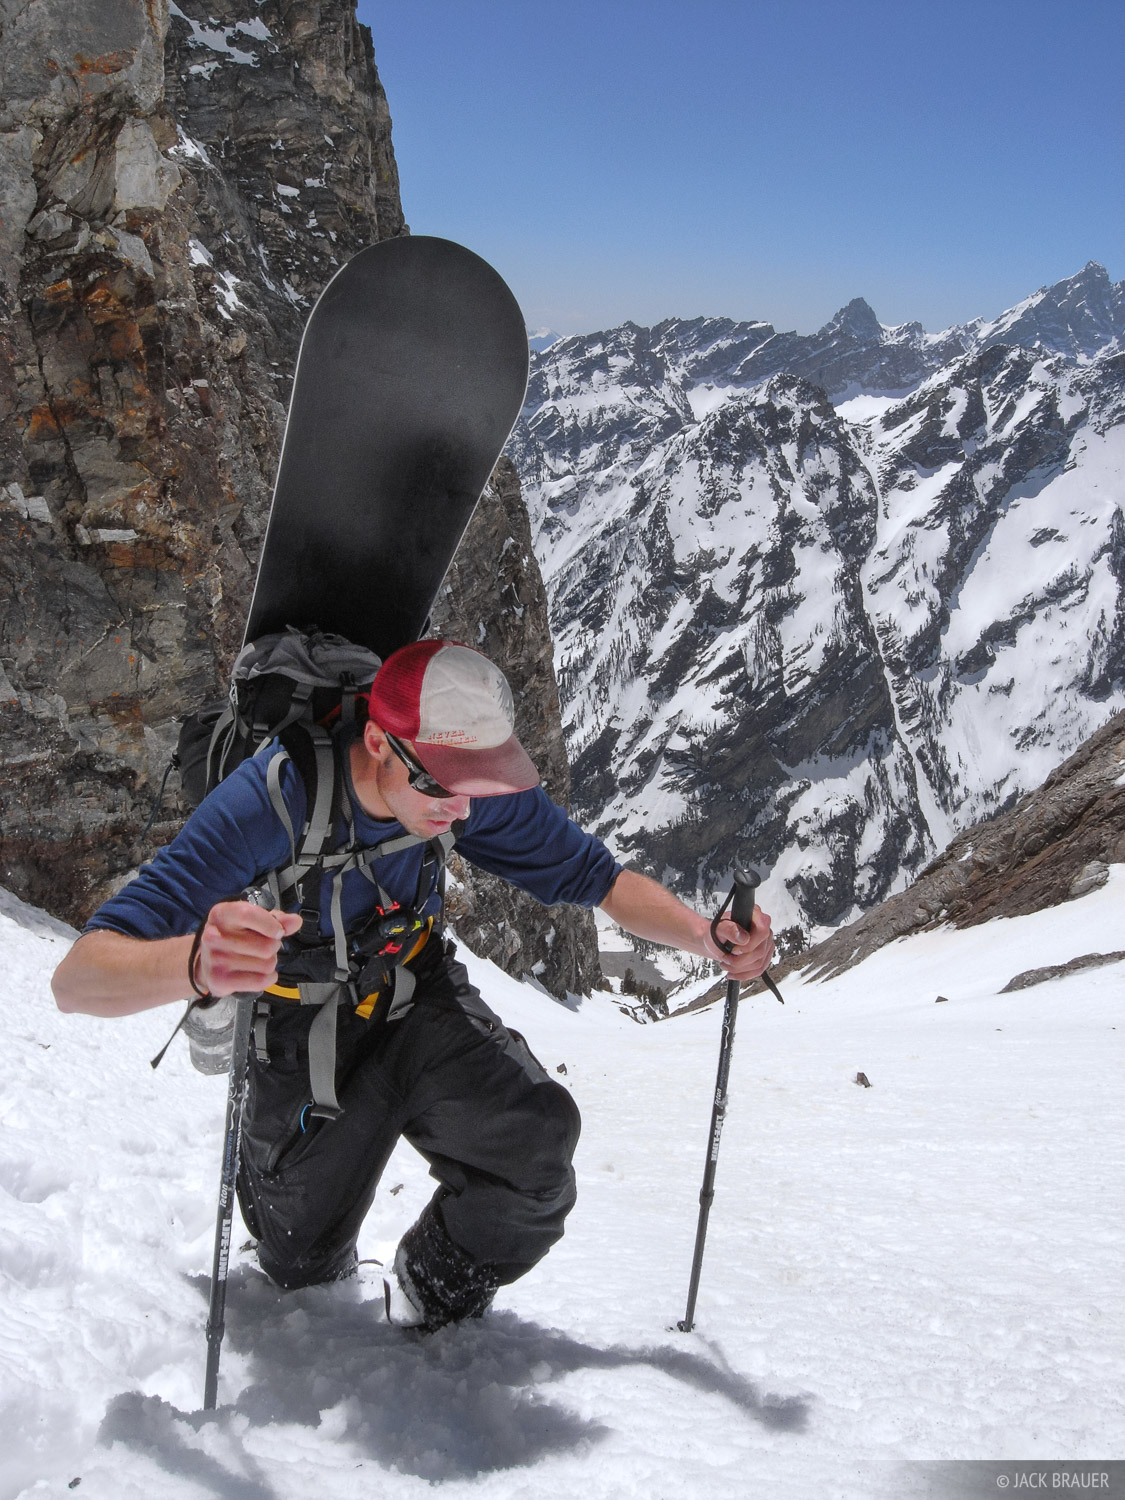 Bootpacking up the long southwestern couloir on Mt. Moran.